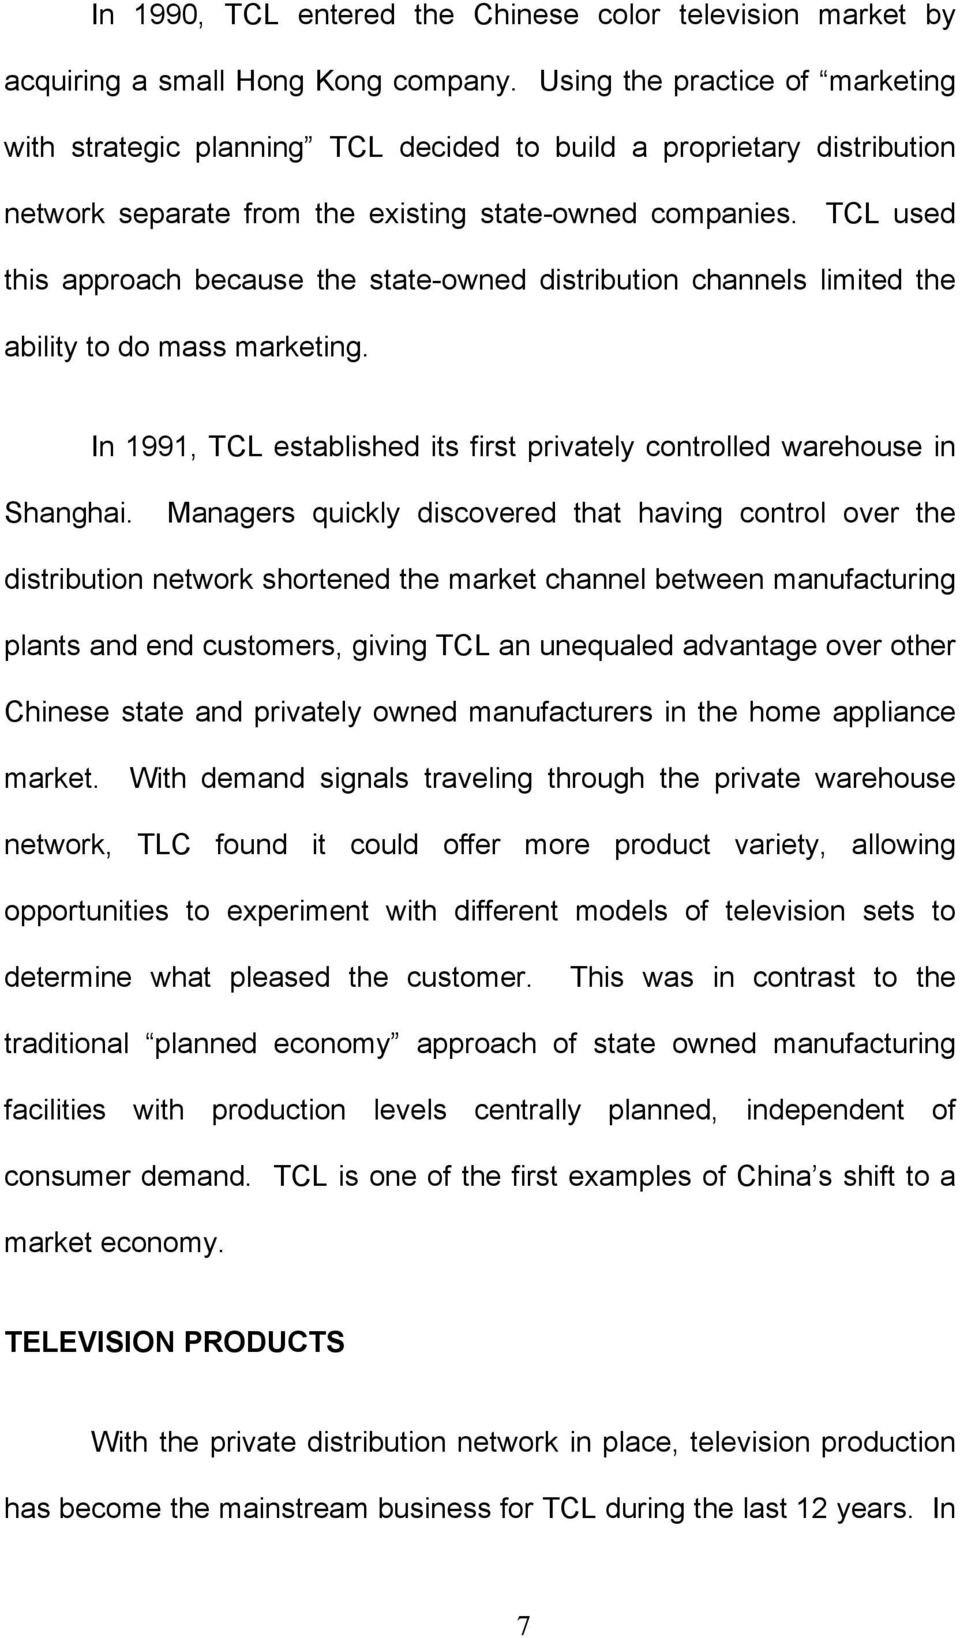 TCL used this approach because the state-owned distribution channels limited the ability to do mass marketing. In 1991, TCL established its first privately controlled warehouse in Shanghai.